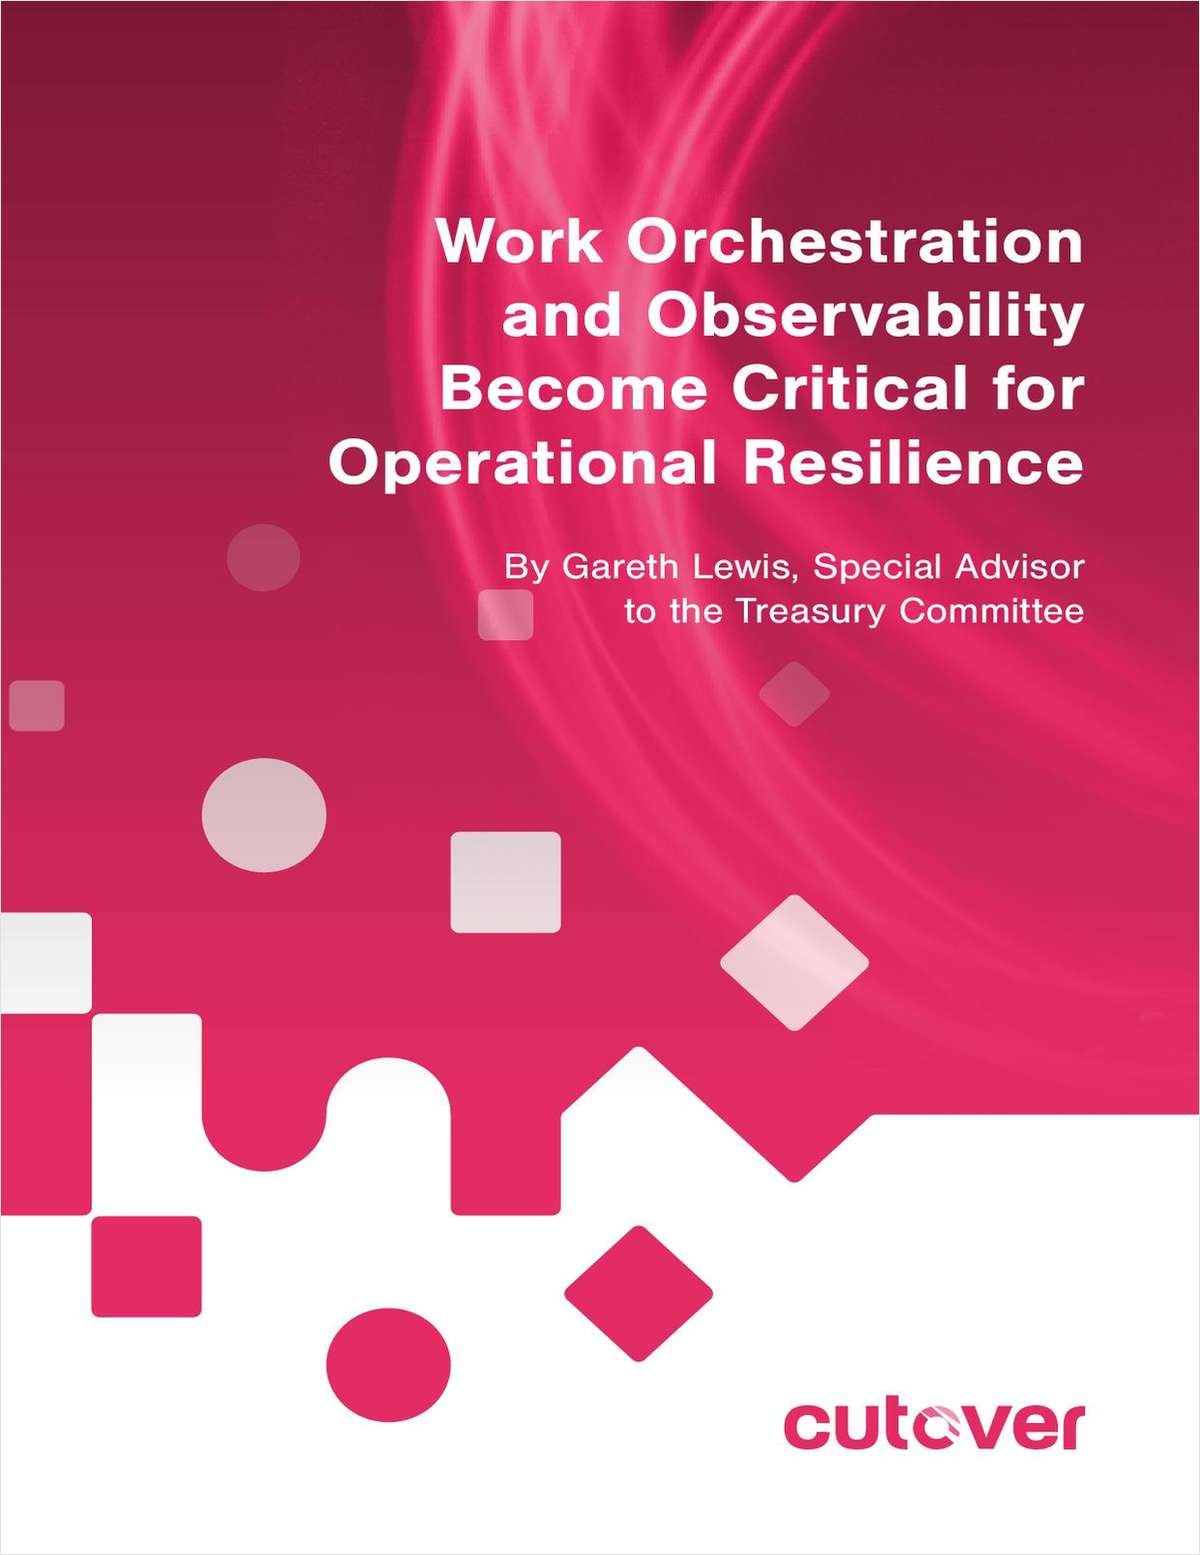 Work Orchestration and Observability Become Critical for Operational Resilience